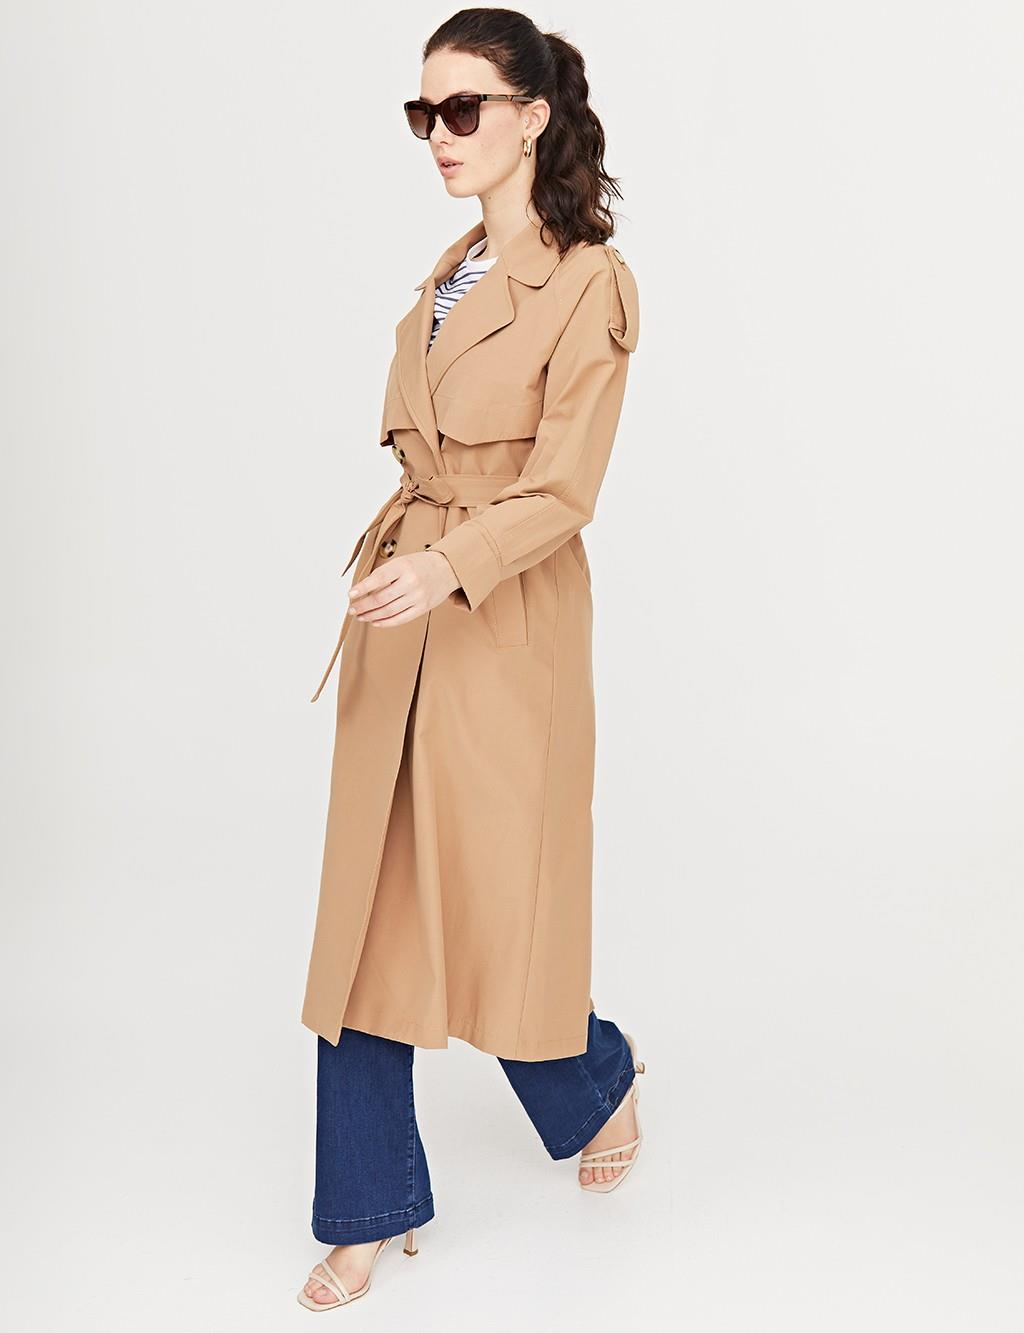 Double Breasted Trenchcoat Beige B21 14008A